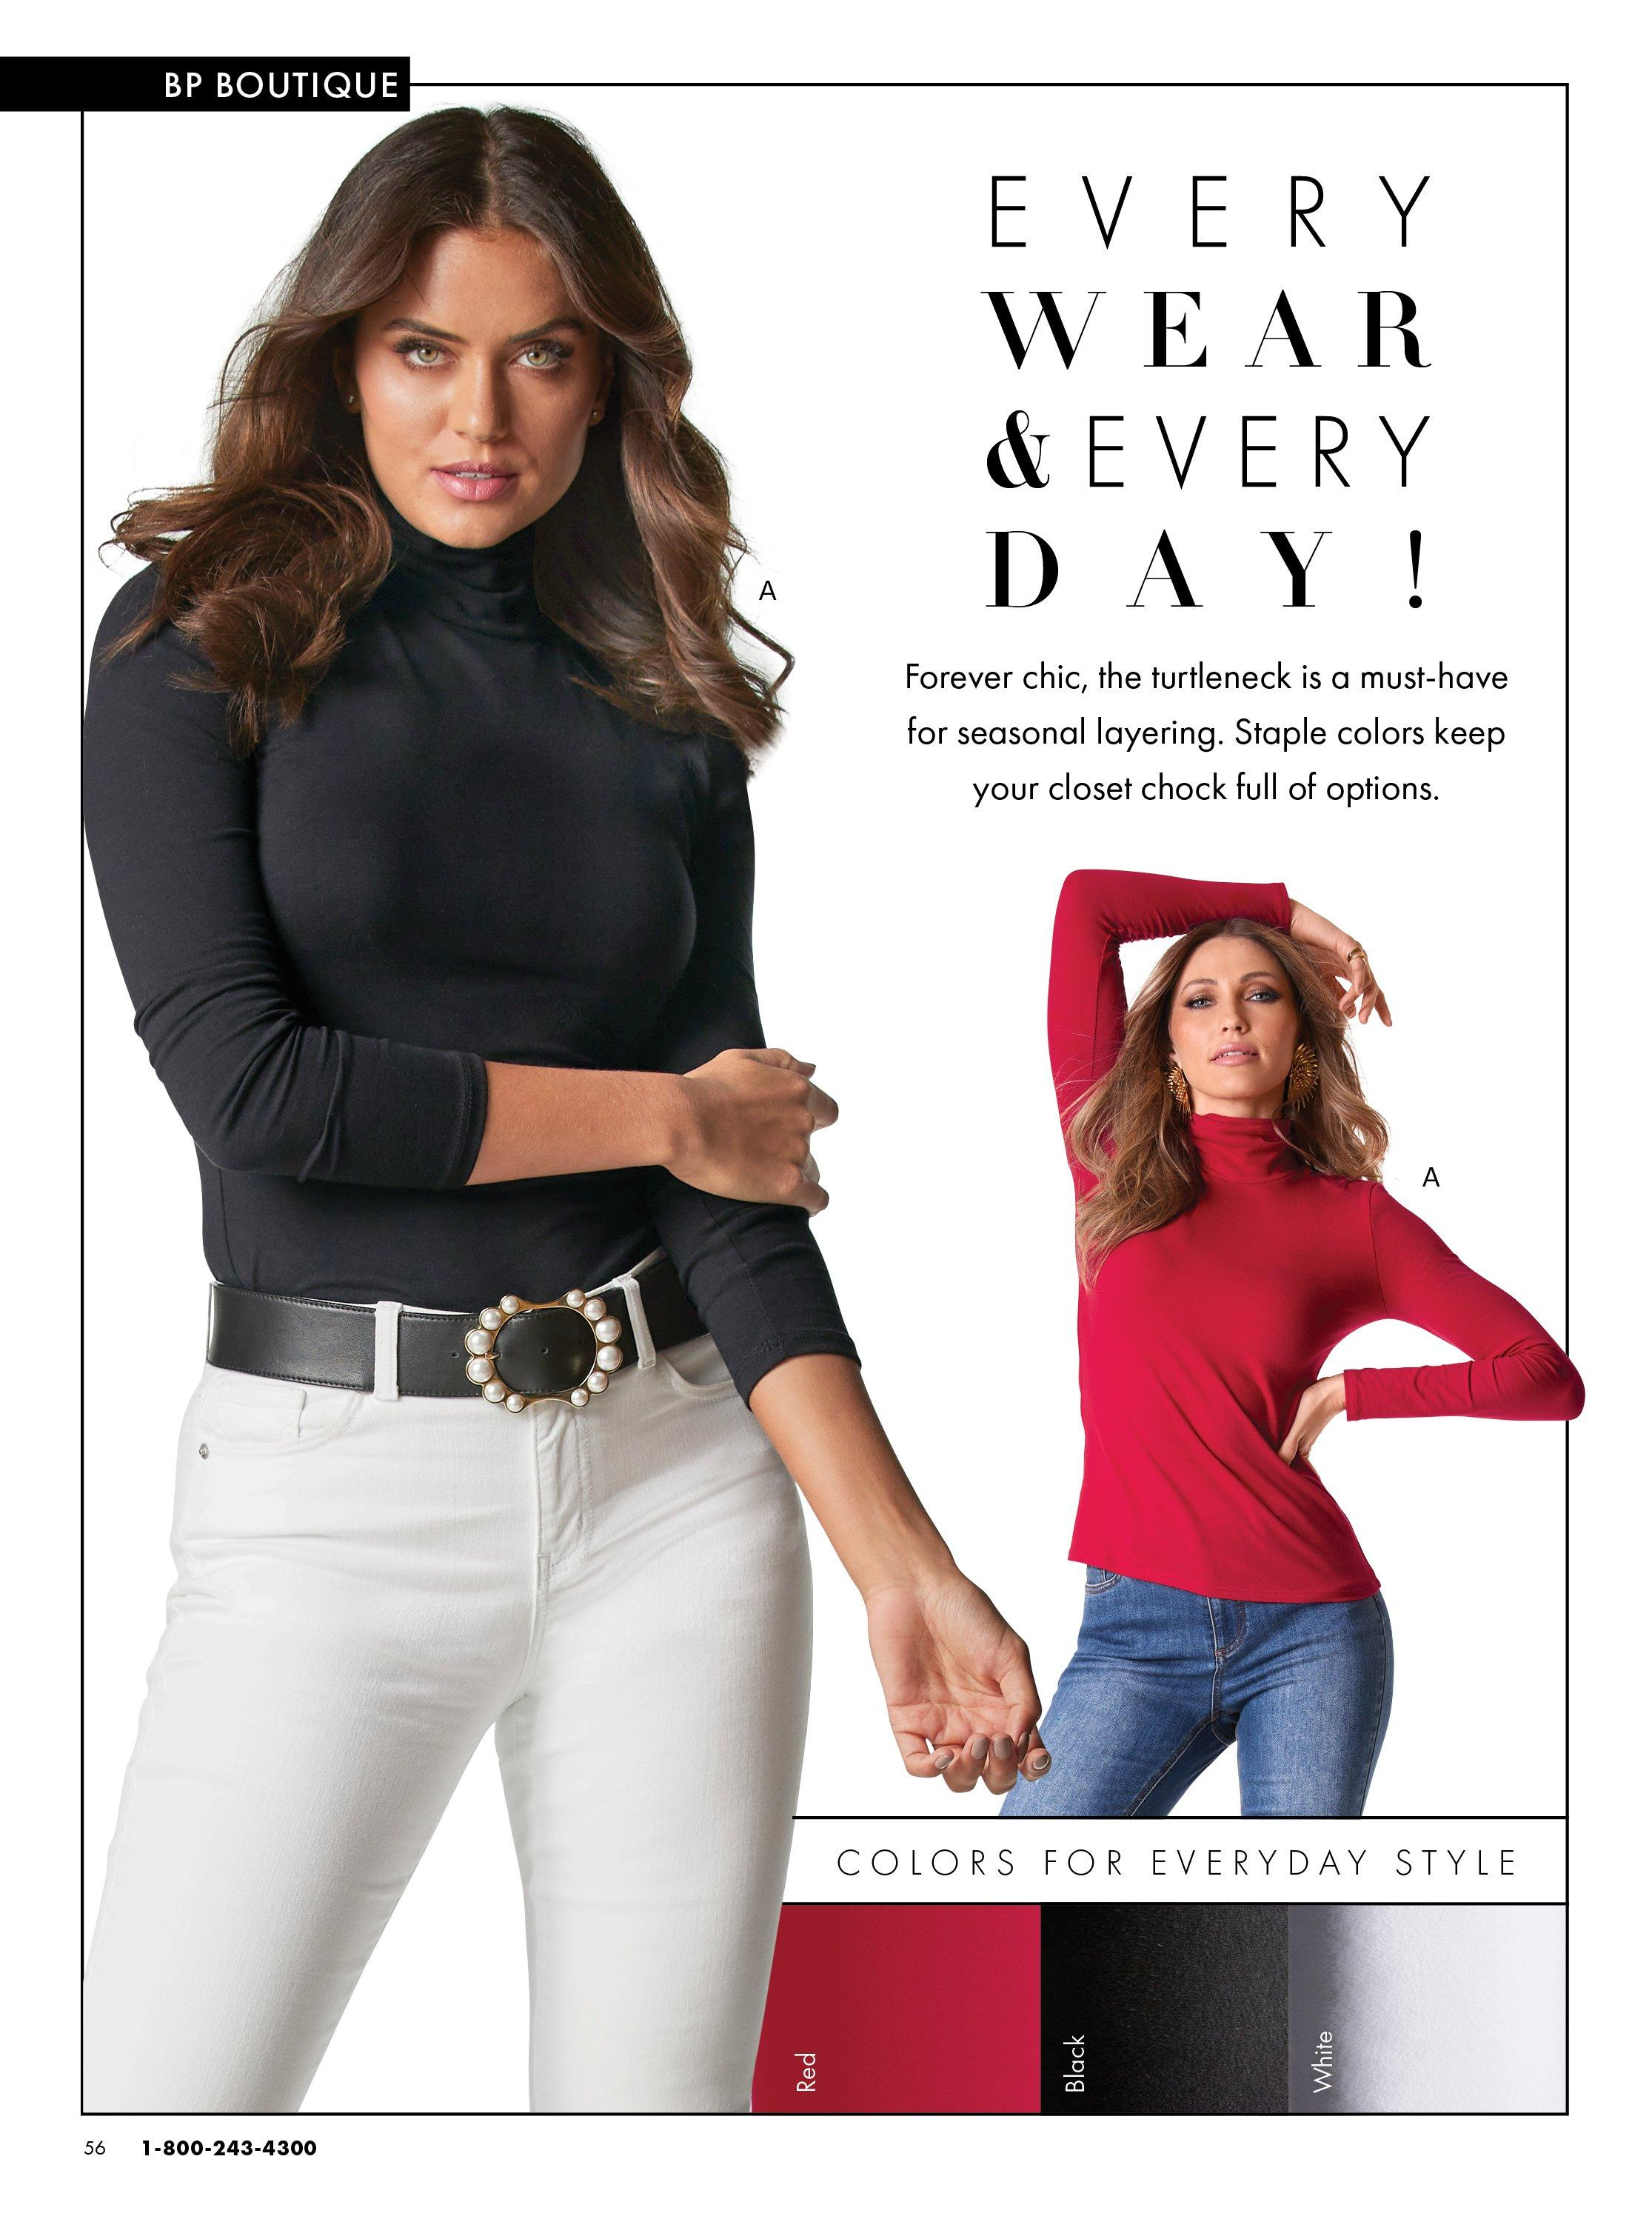 left model wearing a black long-sleeve turtleneck, black belt with pearl embellishments, and white jeans. right model wearing the same top in red and medium wash jeans.